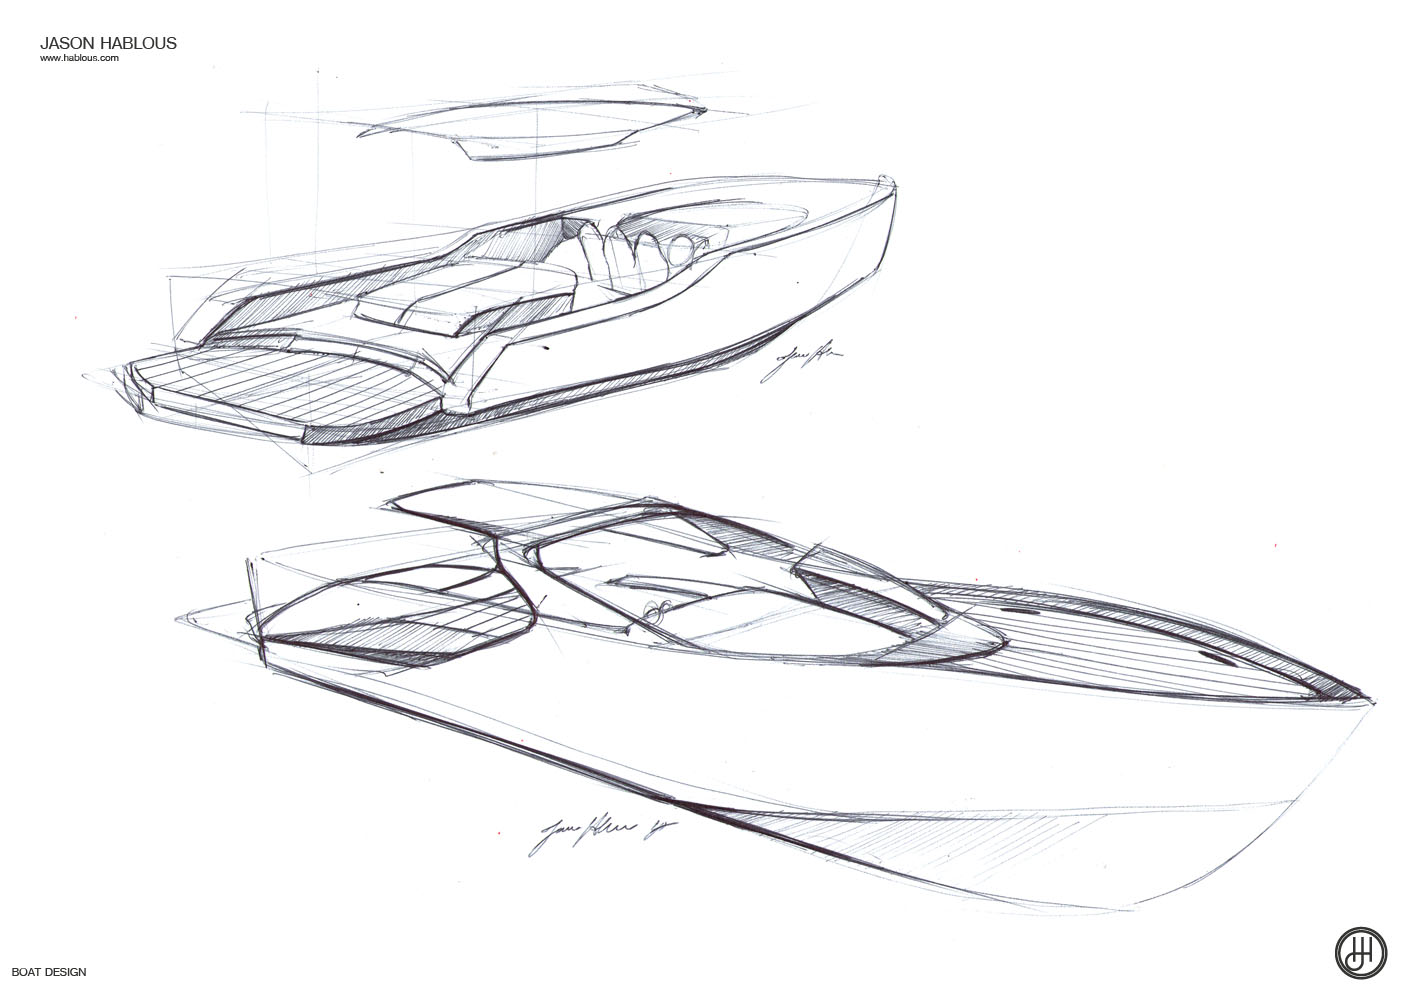 Jd Boat Design Sketches